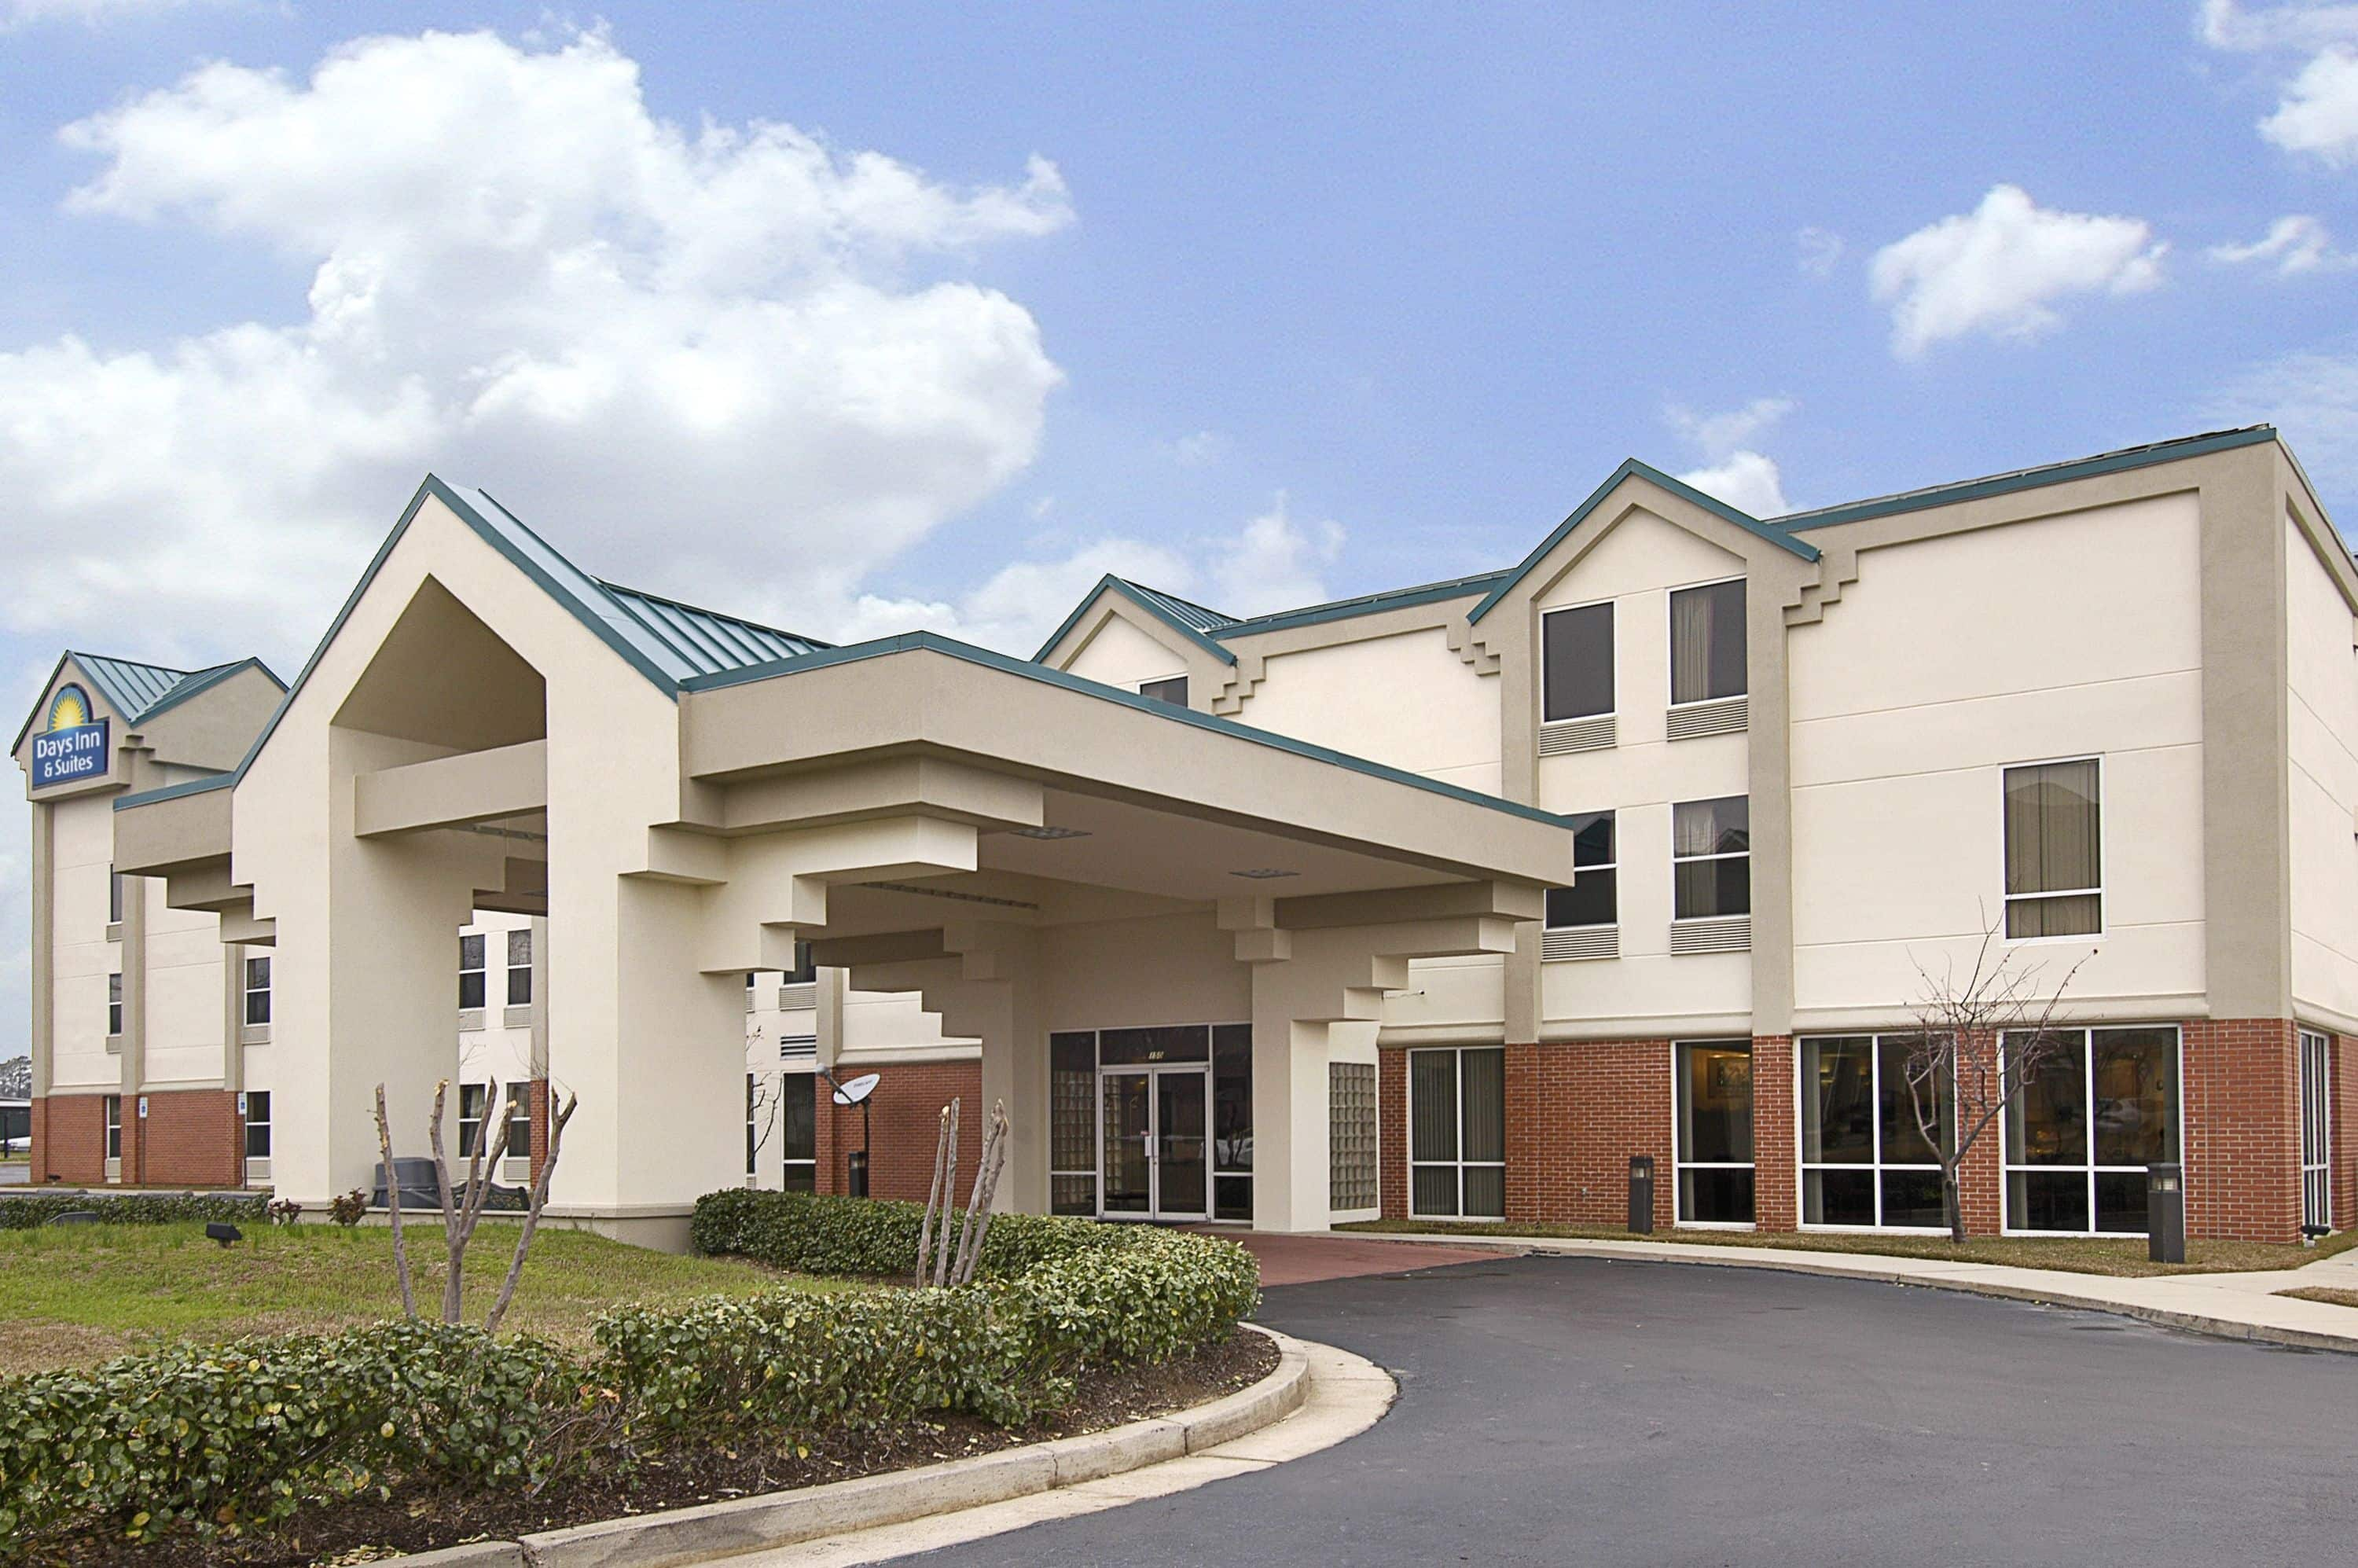 Cool Exterior Of Days Inn U Suites Ridgeland Hotel In Mississippi With Hotels Near Sc